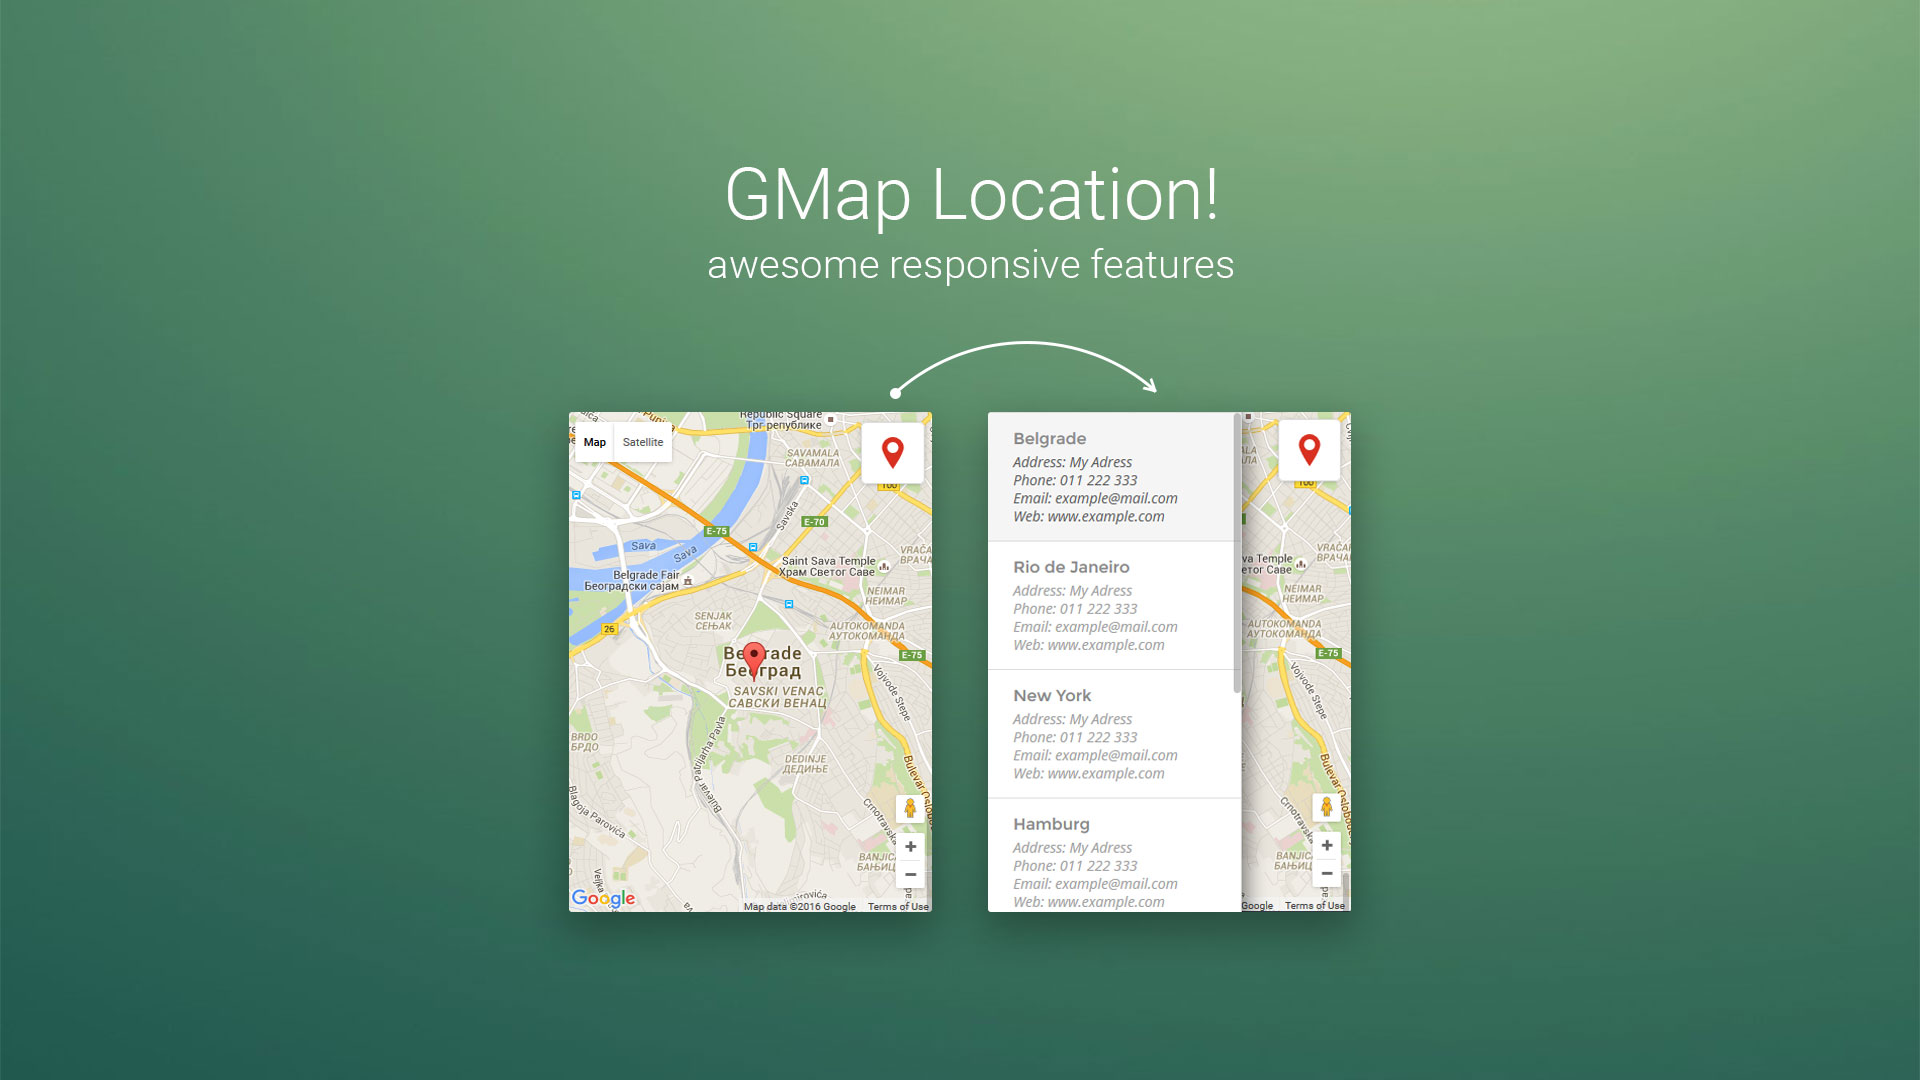 Gmap location joomla google maps module by kreativan codecanyon gmap location joomla google maps module baditri Images